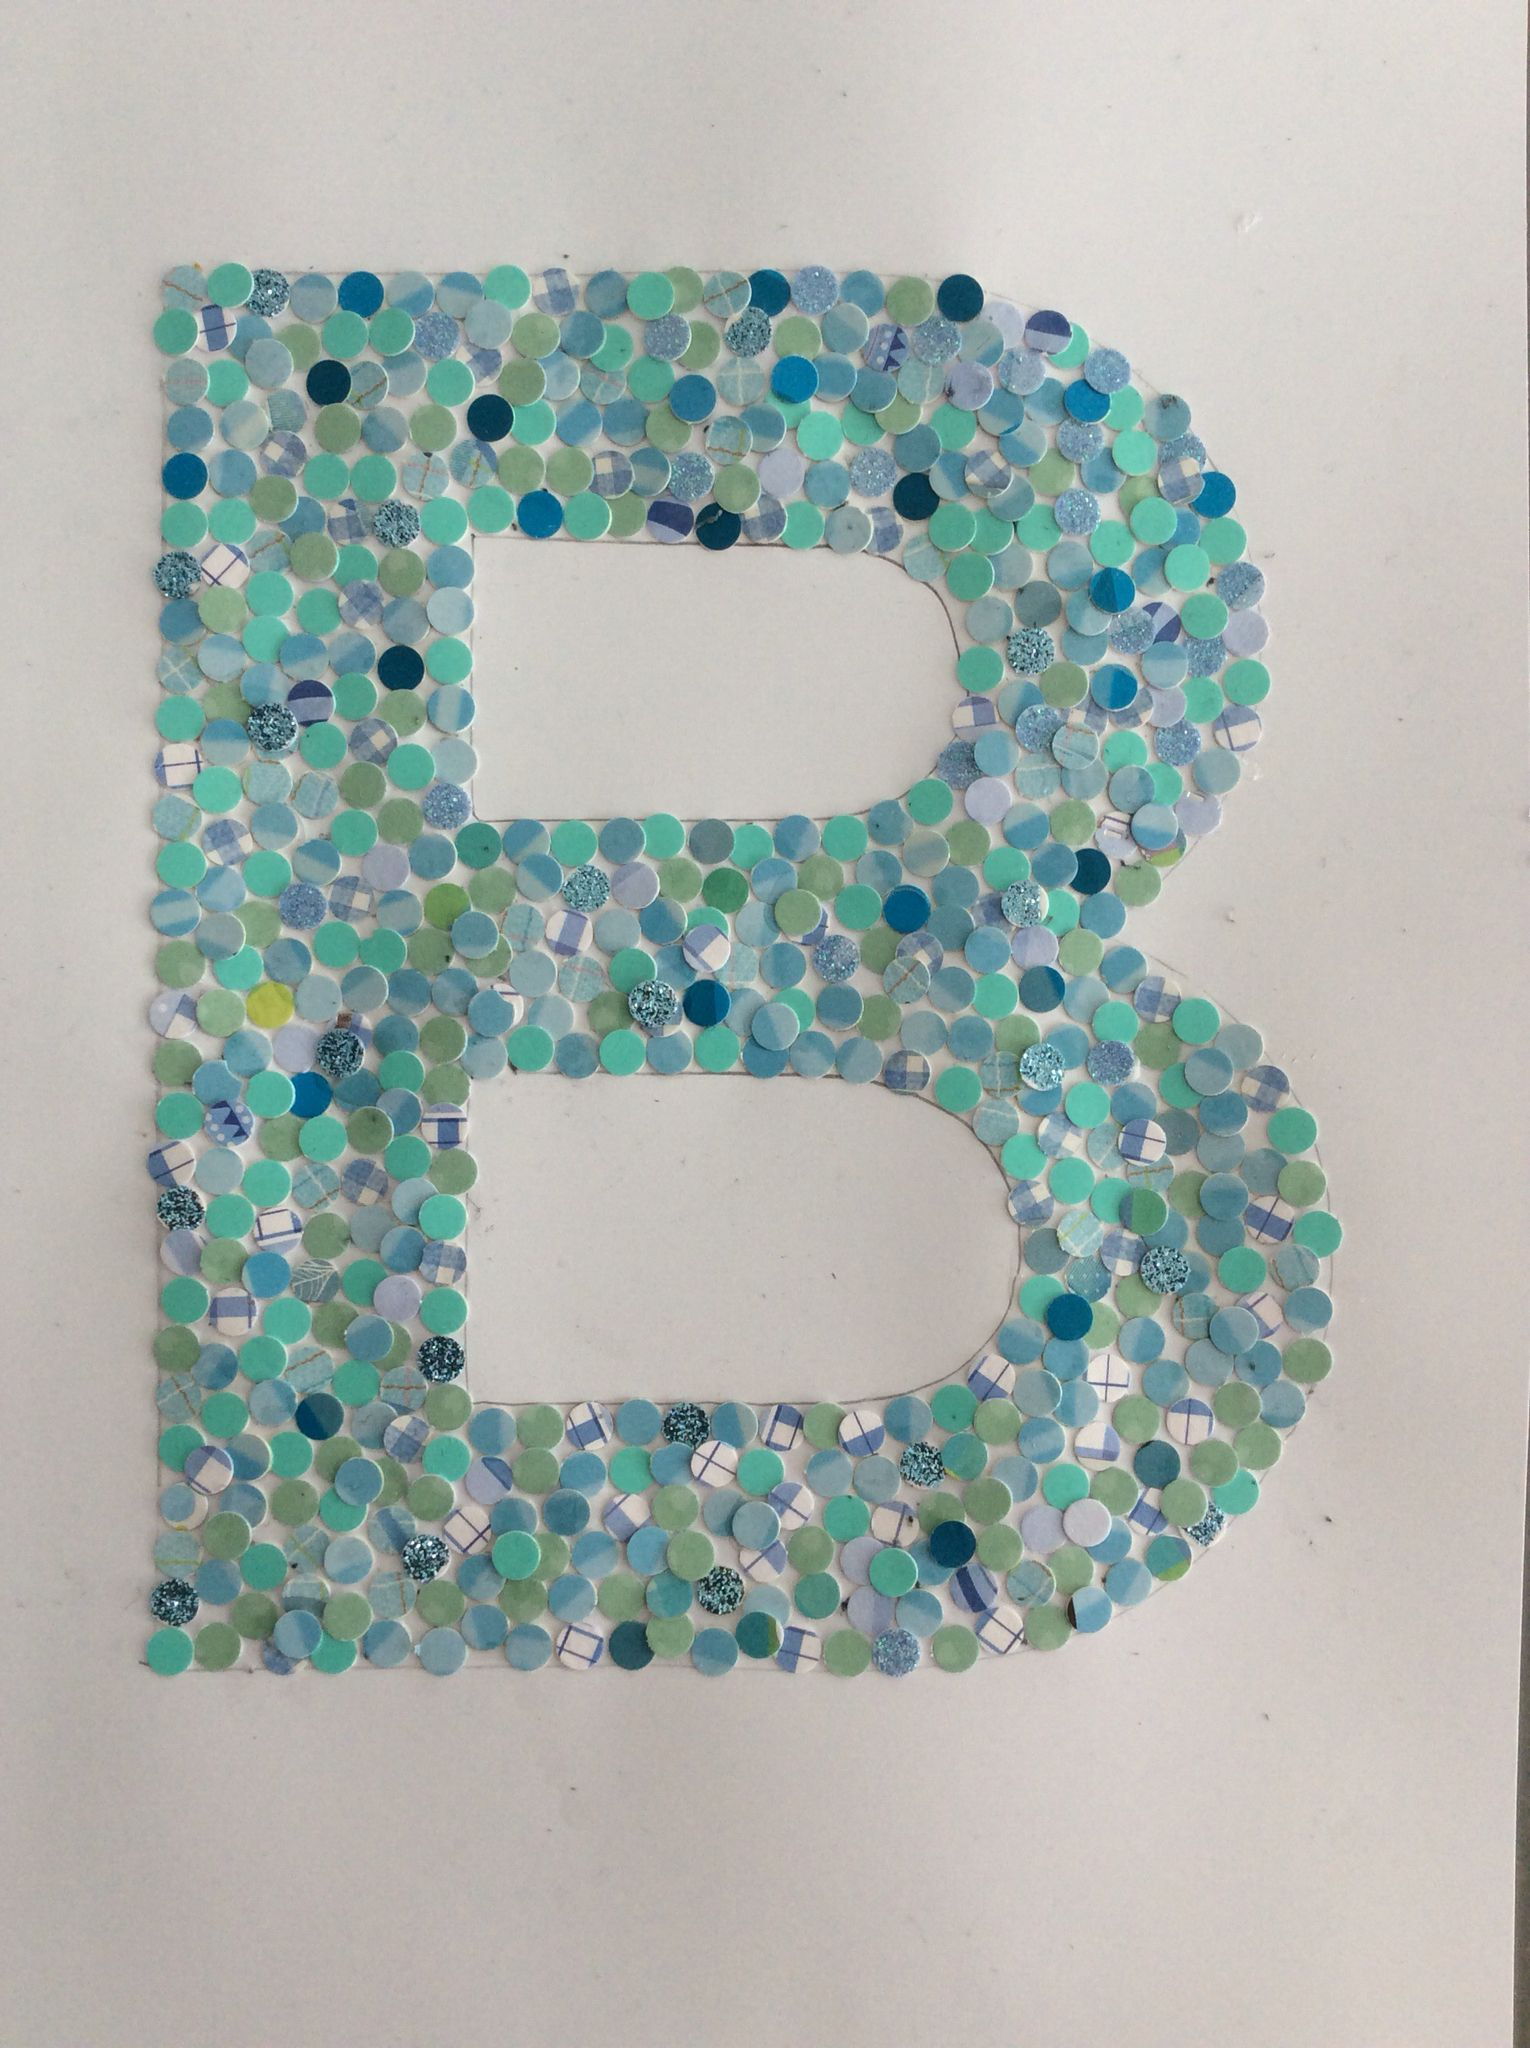 Confetti letter! When my son was born, we received a lot of postcards. I made confetti out of it, and glued them into the silhouet of the first letter of his name Beau. Nice to put in a photophrame for his room.